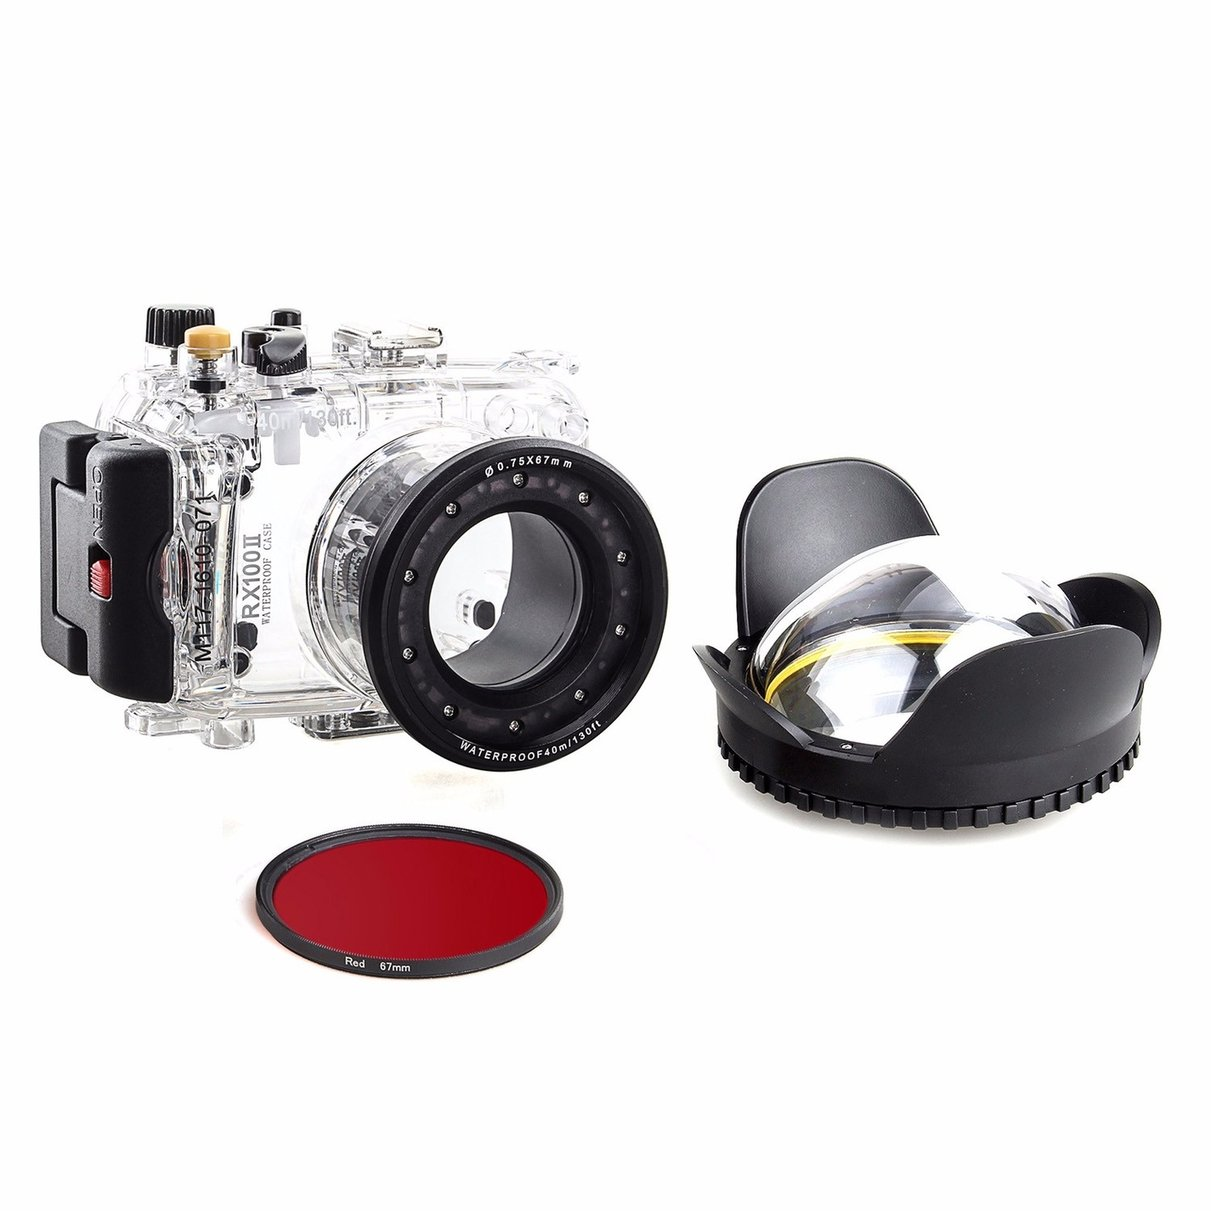 40m/130f Waterproof Underwater Camera Housing Diving Case for SONY DSC RX100 ii + Red Filter 67mm + 67mm Fisheye Lens gaming headset led light glow noise cancealing pc gamer super bass headband headphones with microphone for computer pc